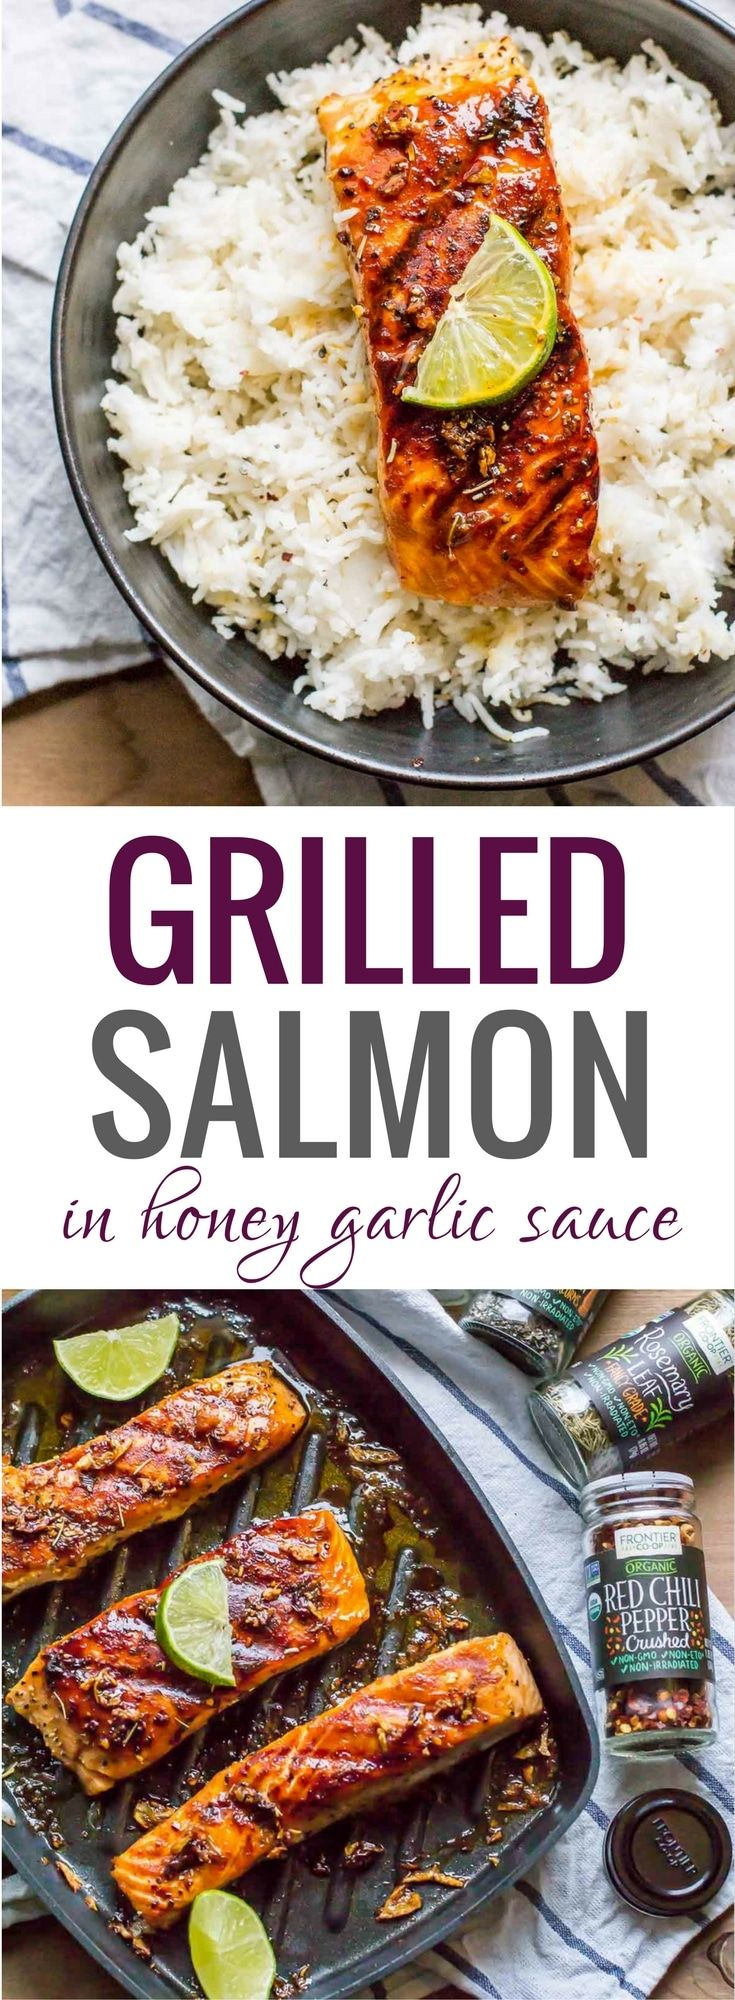 This easy 15-minute grilled honey garlic salmon is perfect for days when you crave a fancy meal but don't want to pay for it or spend hours making it. It is so finger-licking good that you'll imagine you are in an upscale restaurant enjoying a gourmet meal. #grilled #salmon #cookwithpurpose #sponsored via @simmertoslimmer